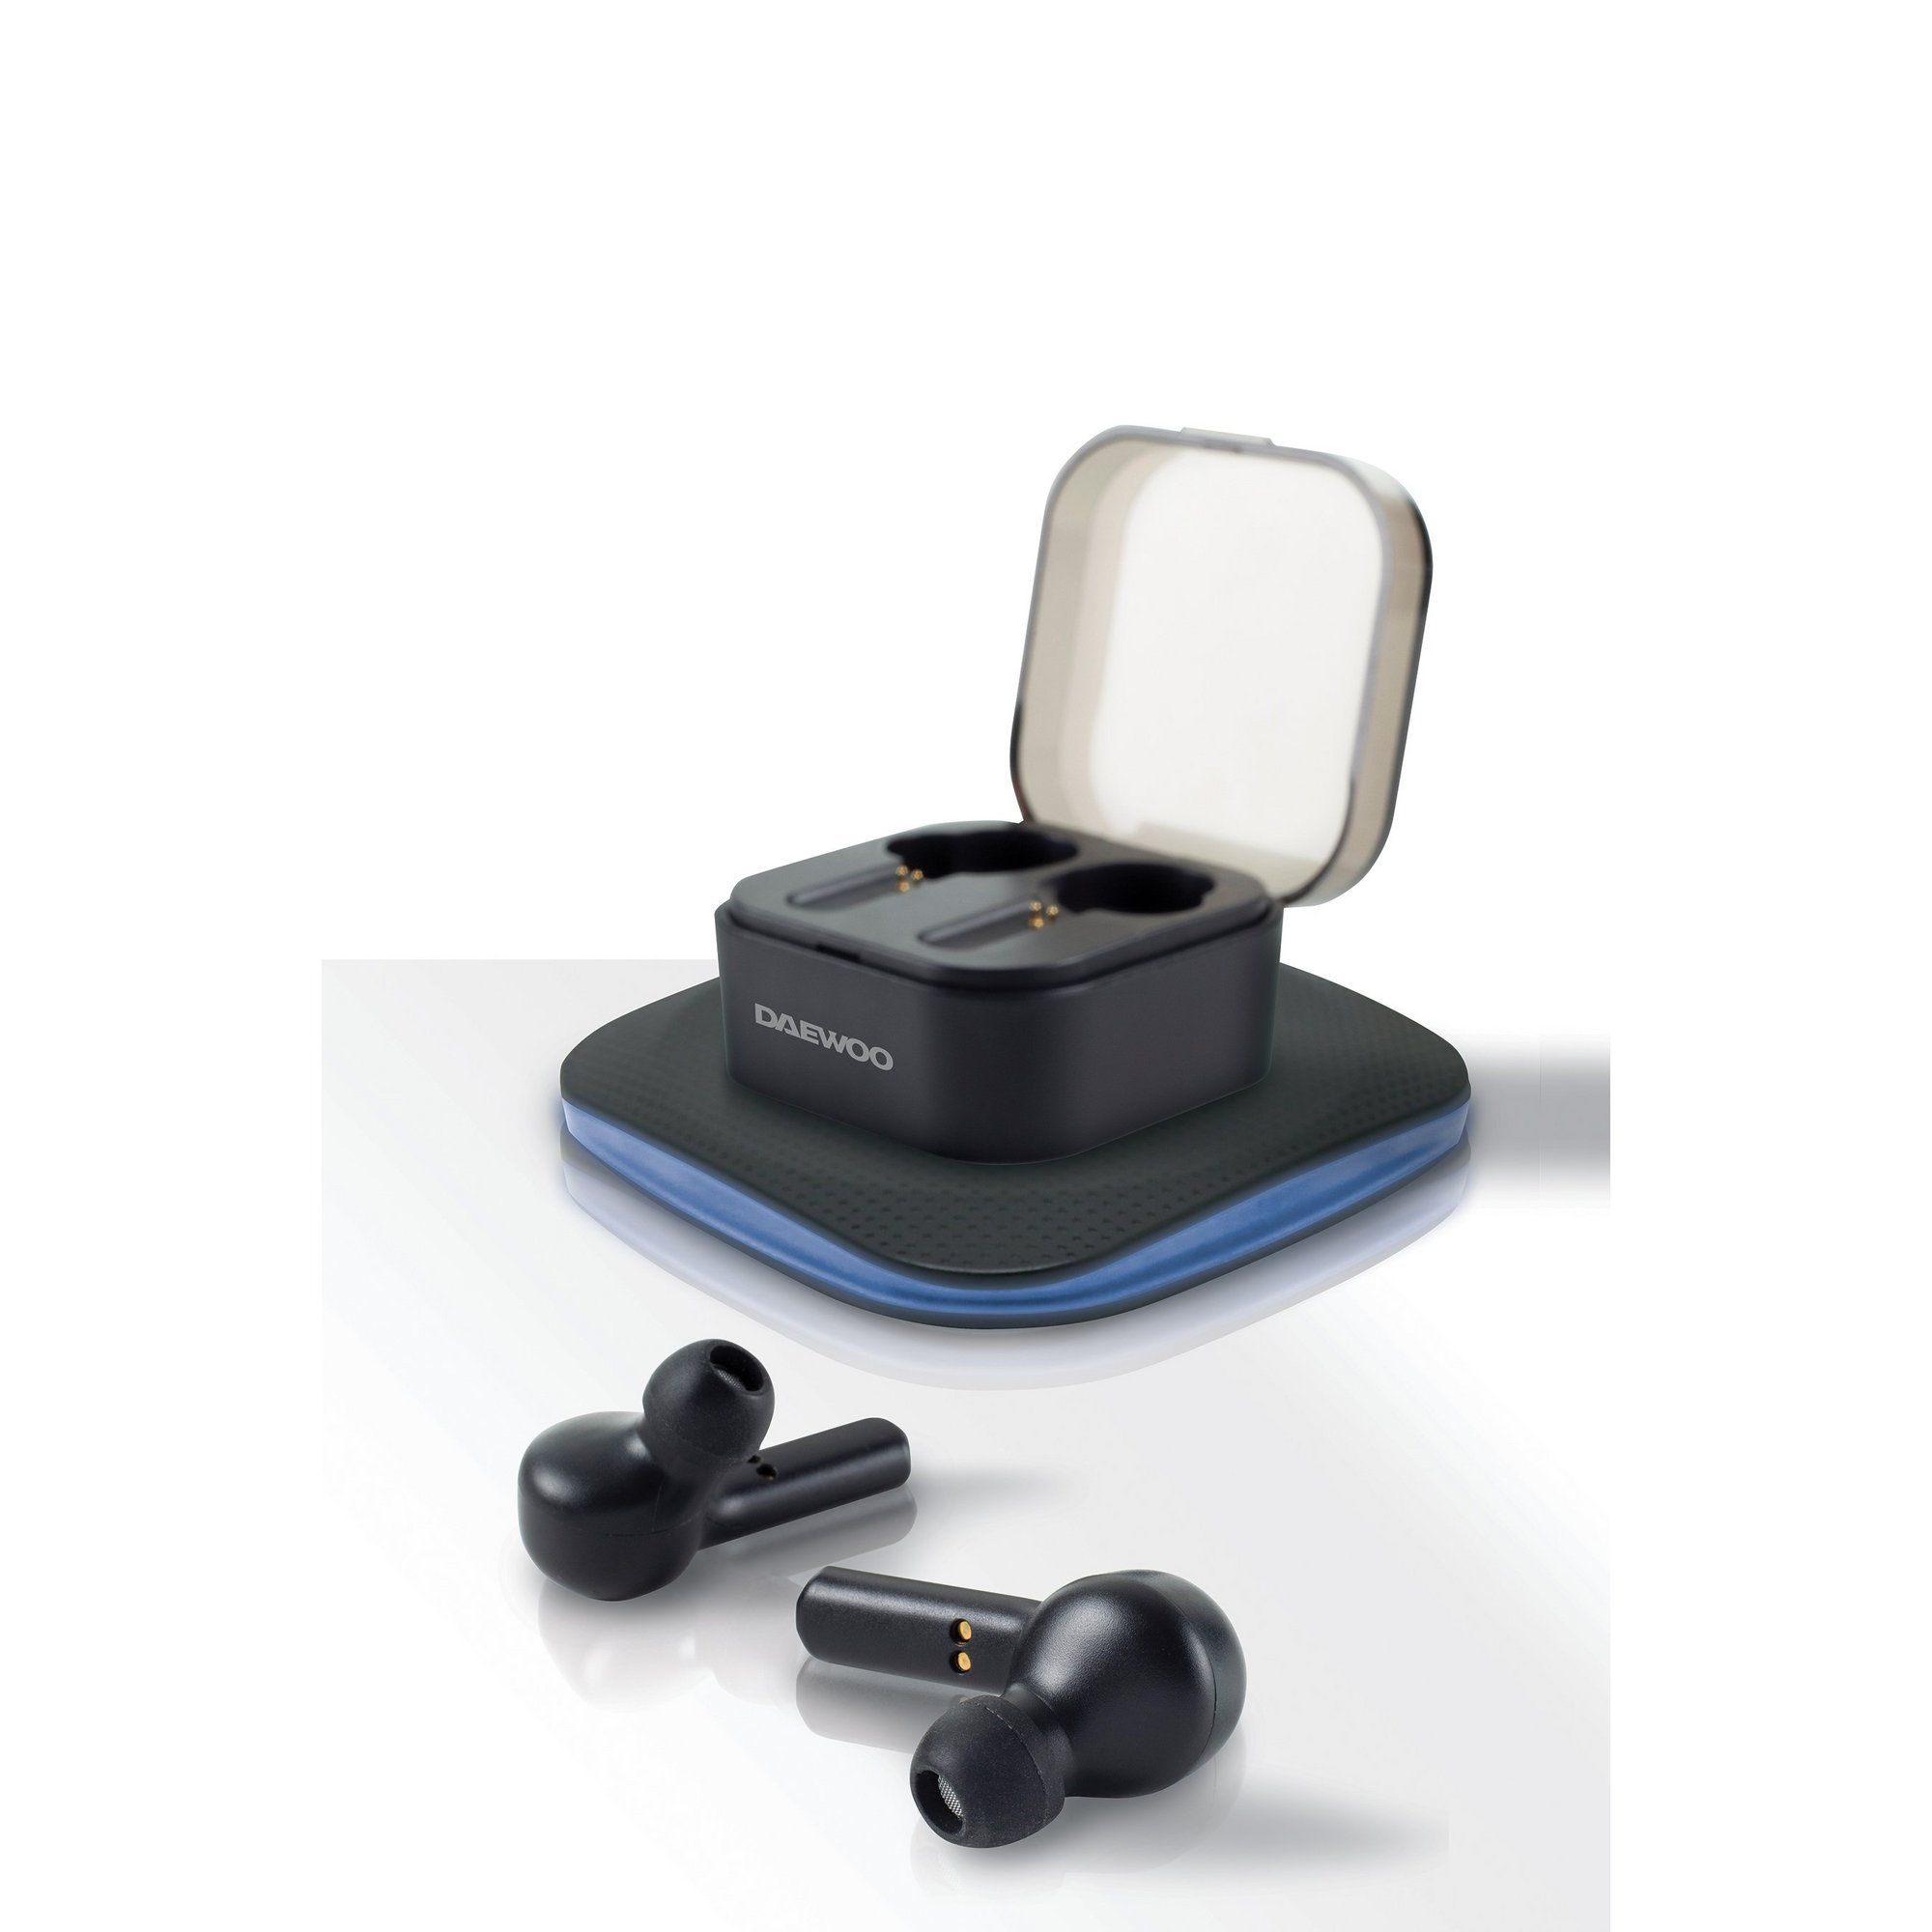 Image of Daewoo Air Buds and Charging Pad